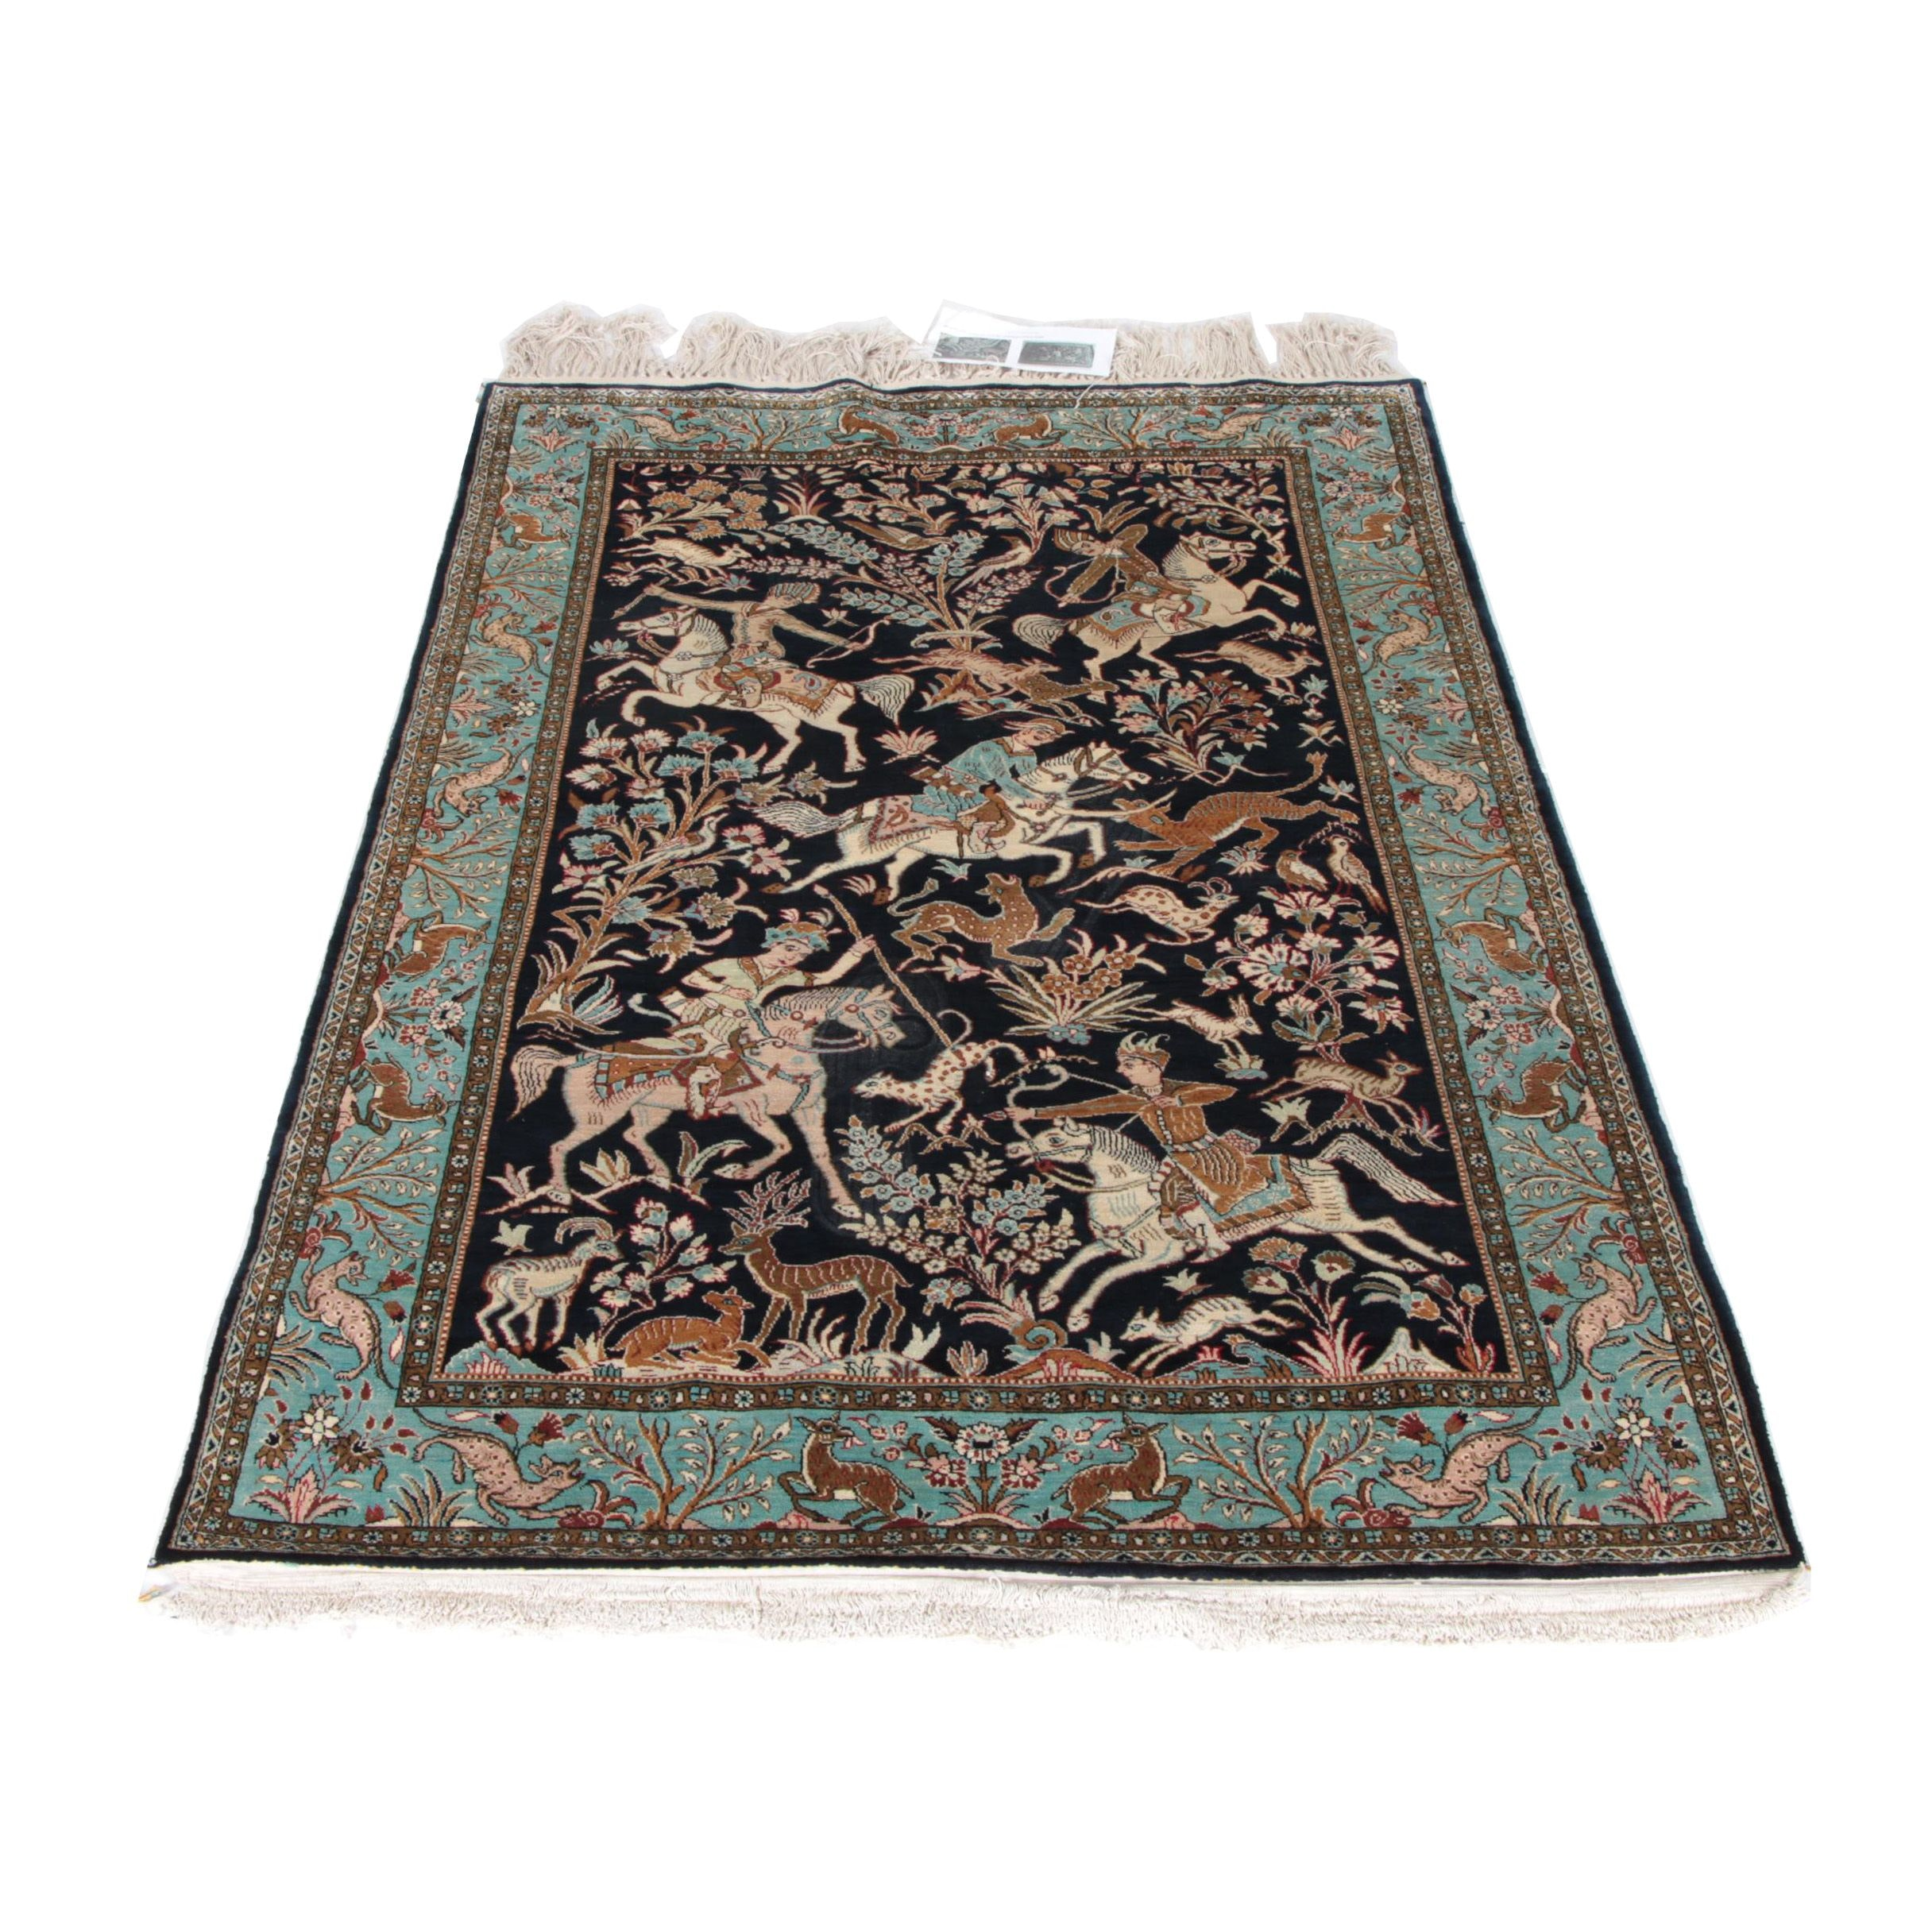 Hand-Knotted Persian Qum Hunting Rug in Silk